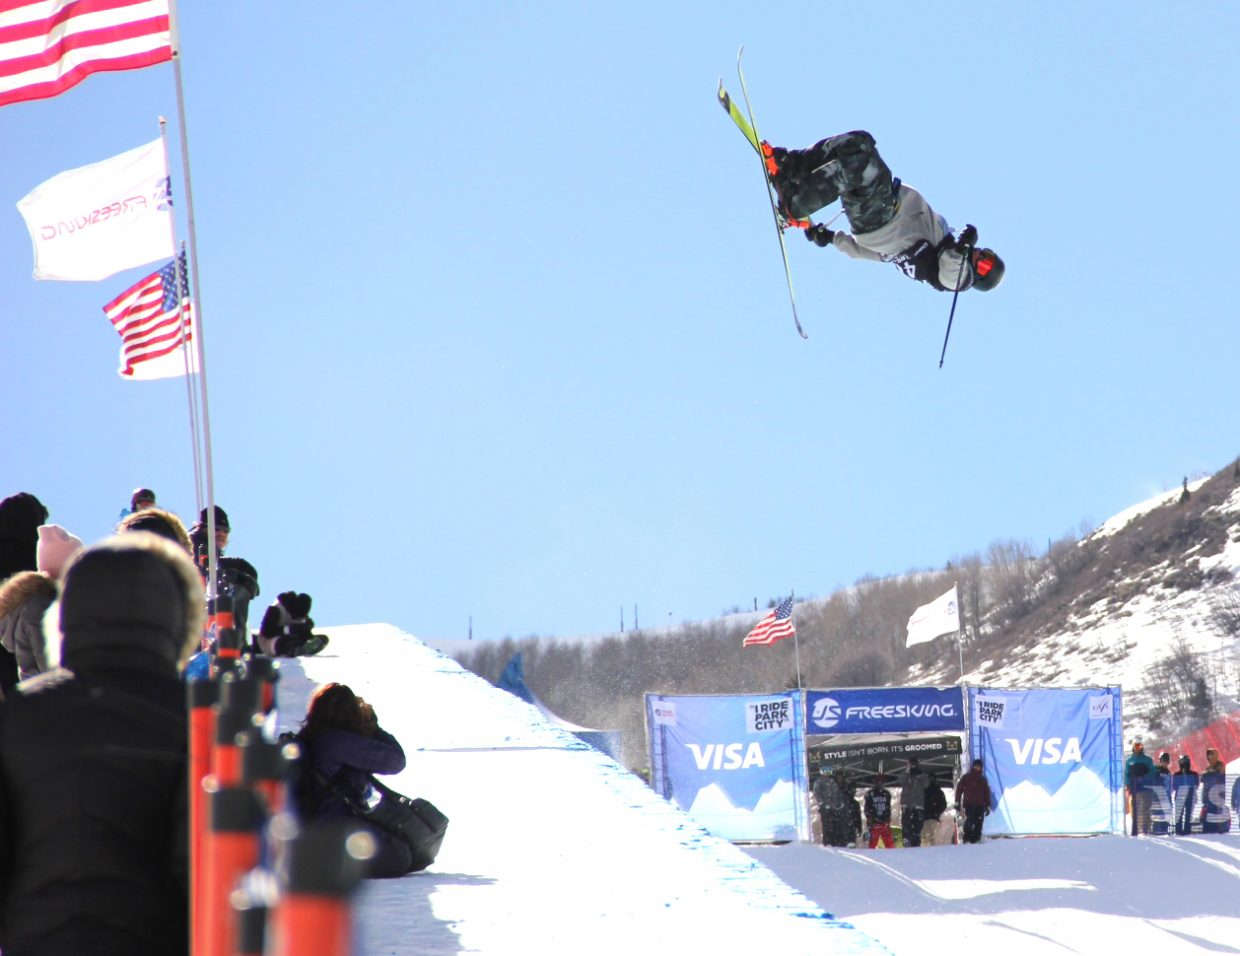 Steamboat Springs skier Lennon Vaughan is wrapping up his season with a strong finish. He placed ninth in the Junior World Championships last week in Italy.